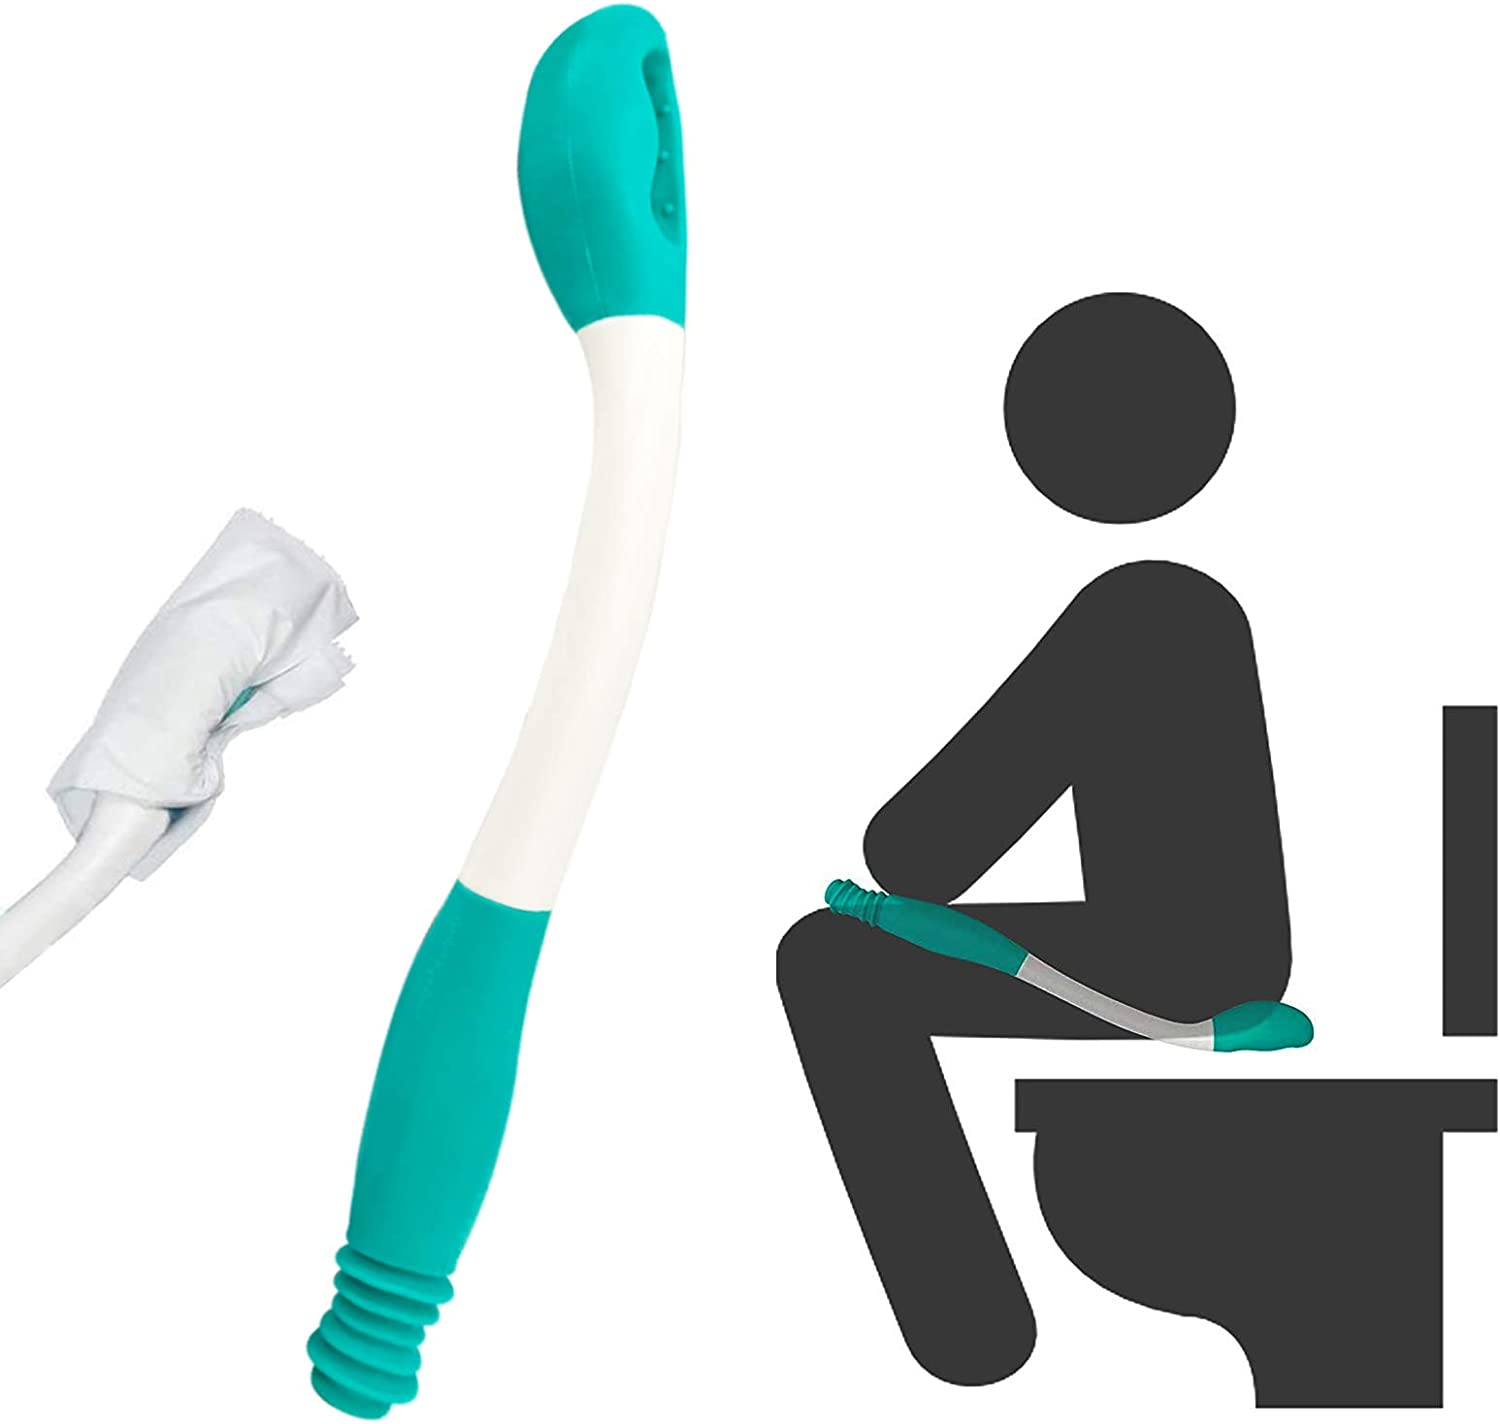 Amazon.com: Kirimon Long Reach Comfort Toilet Wiping Aids Tools - Self  Assist Bathroom Bottom Buddy Wiping Toilet Aid for Limited Mobility,Elderly,  Pregnancy,Disabled, Arthritis,Shoulder or Back Pain,Surgery: Health & Personal  Care